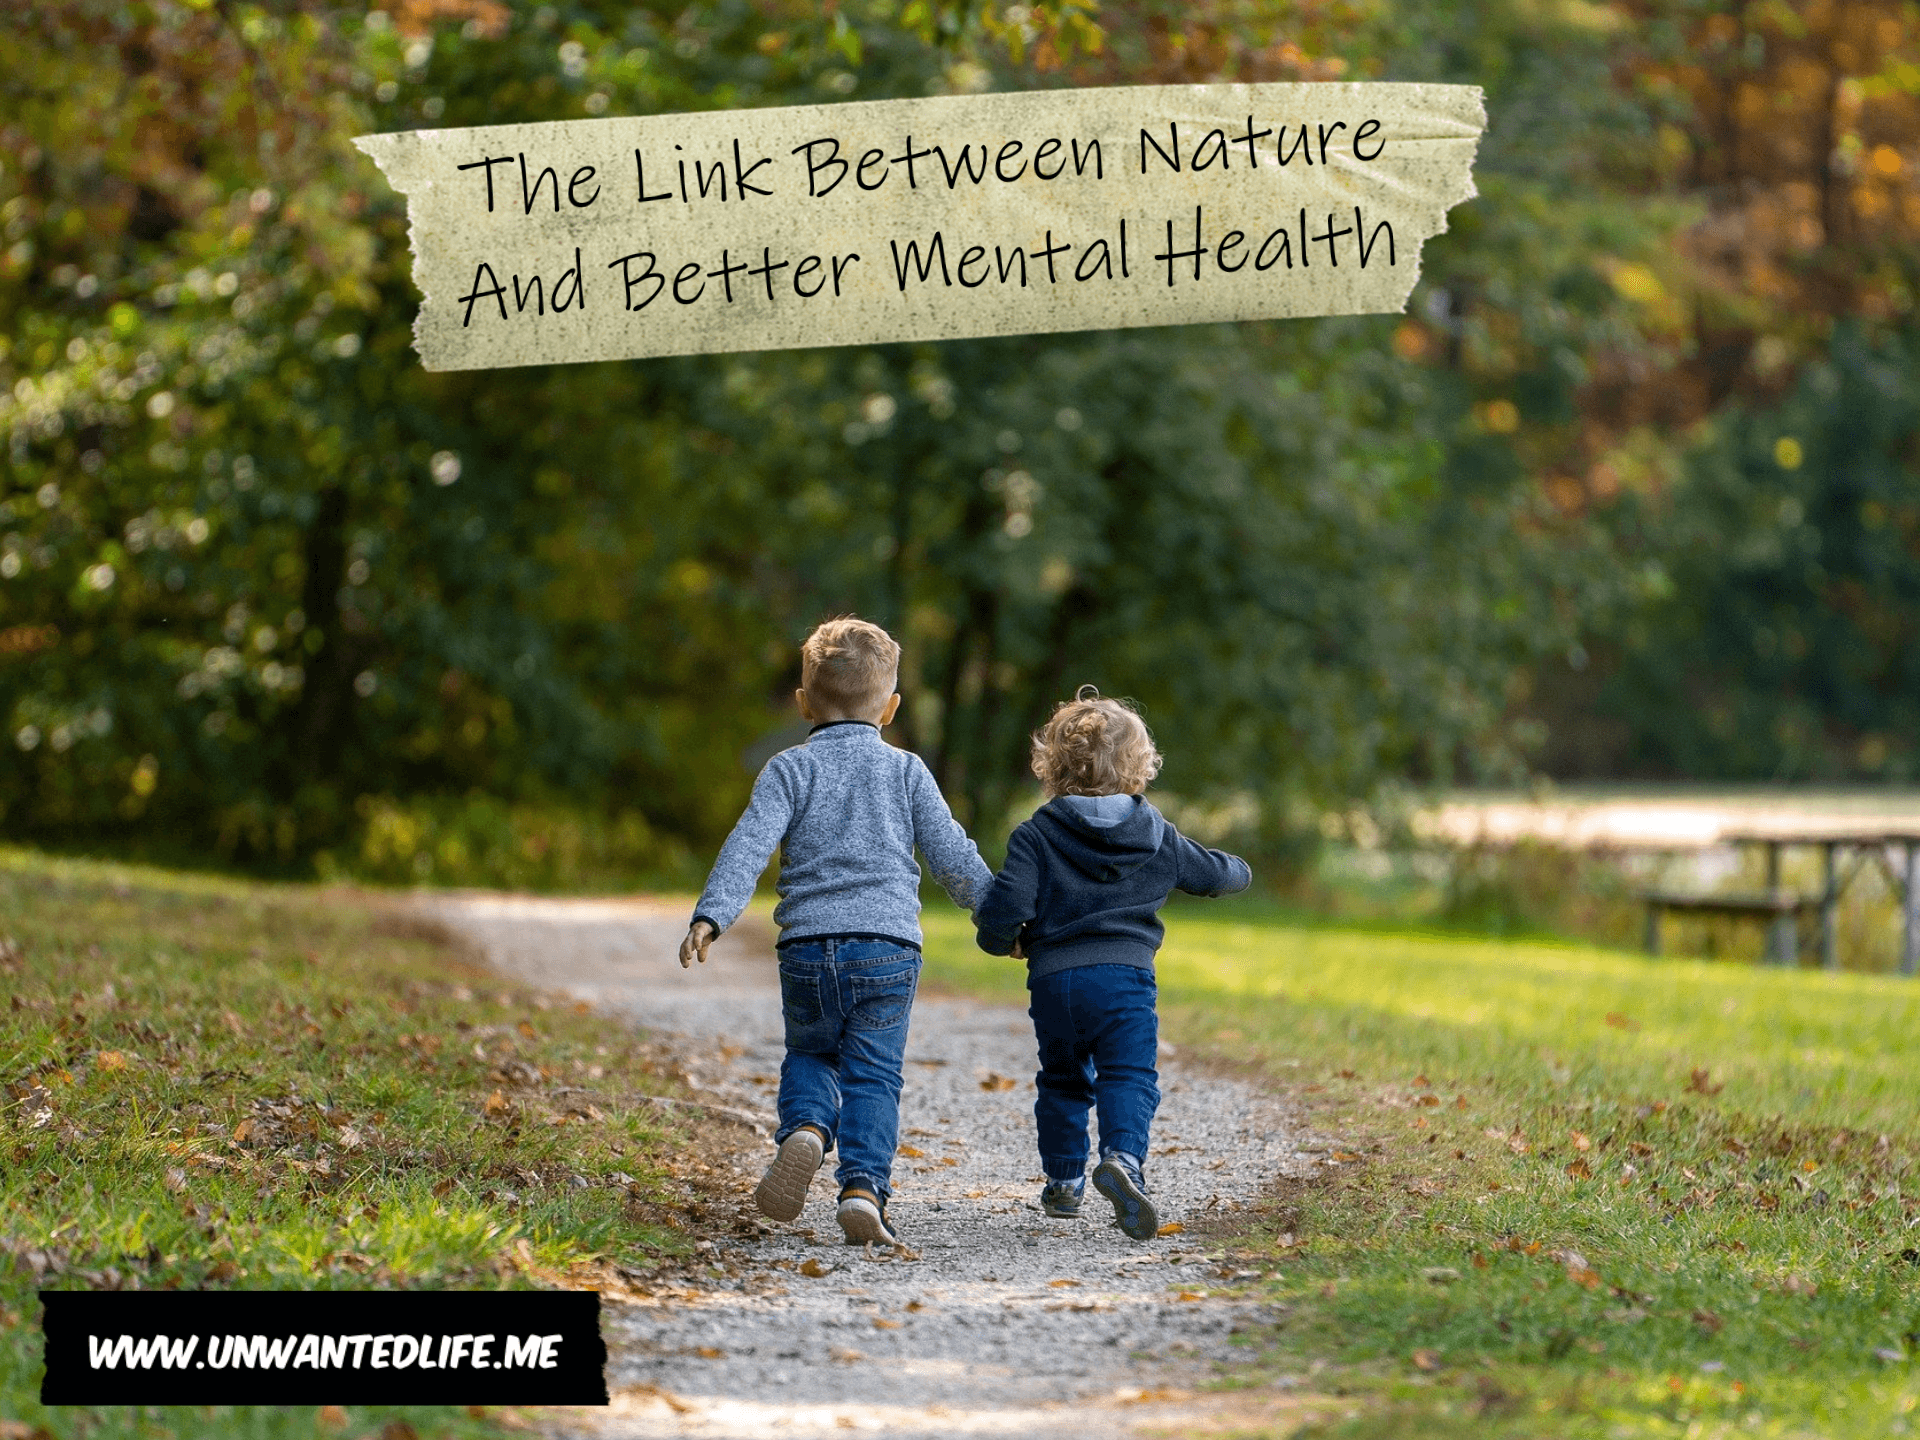 A photo of two children walking along a path in a park to represent the topic of the article - The Link Between Nature And Better Mental Health